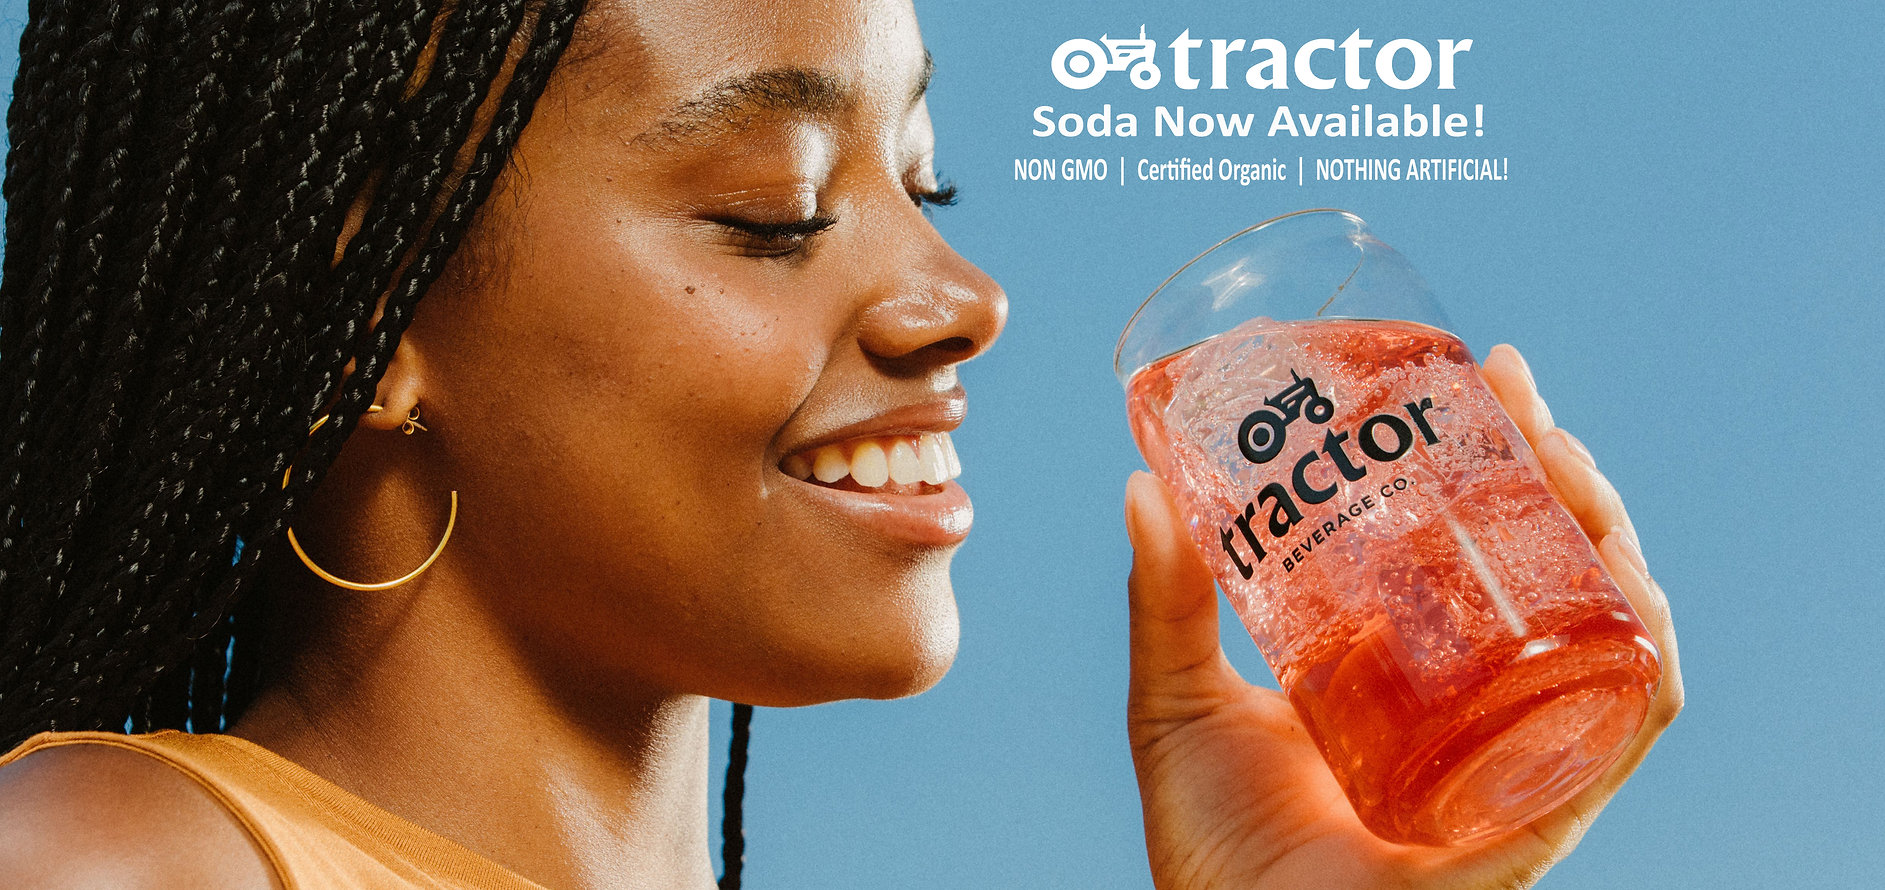 Tractor Beverage - Now Available - websi